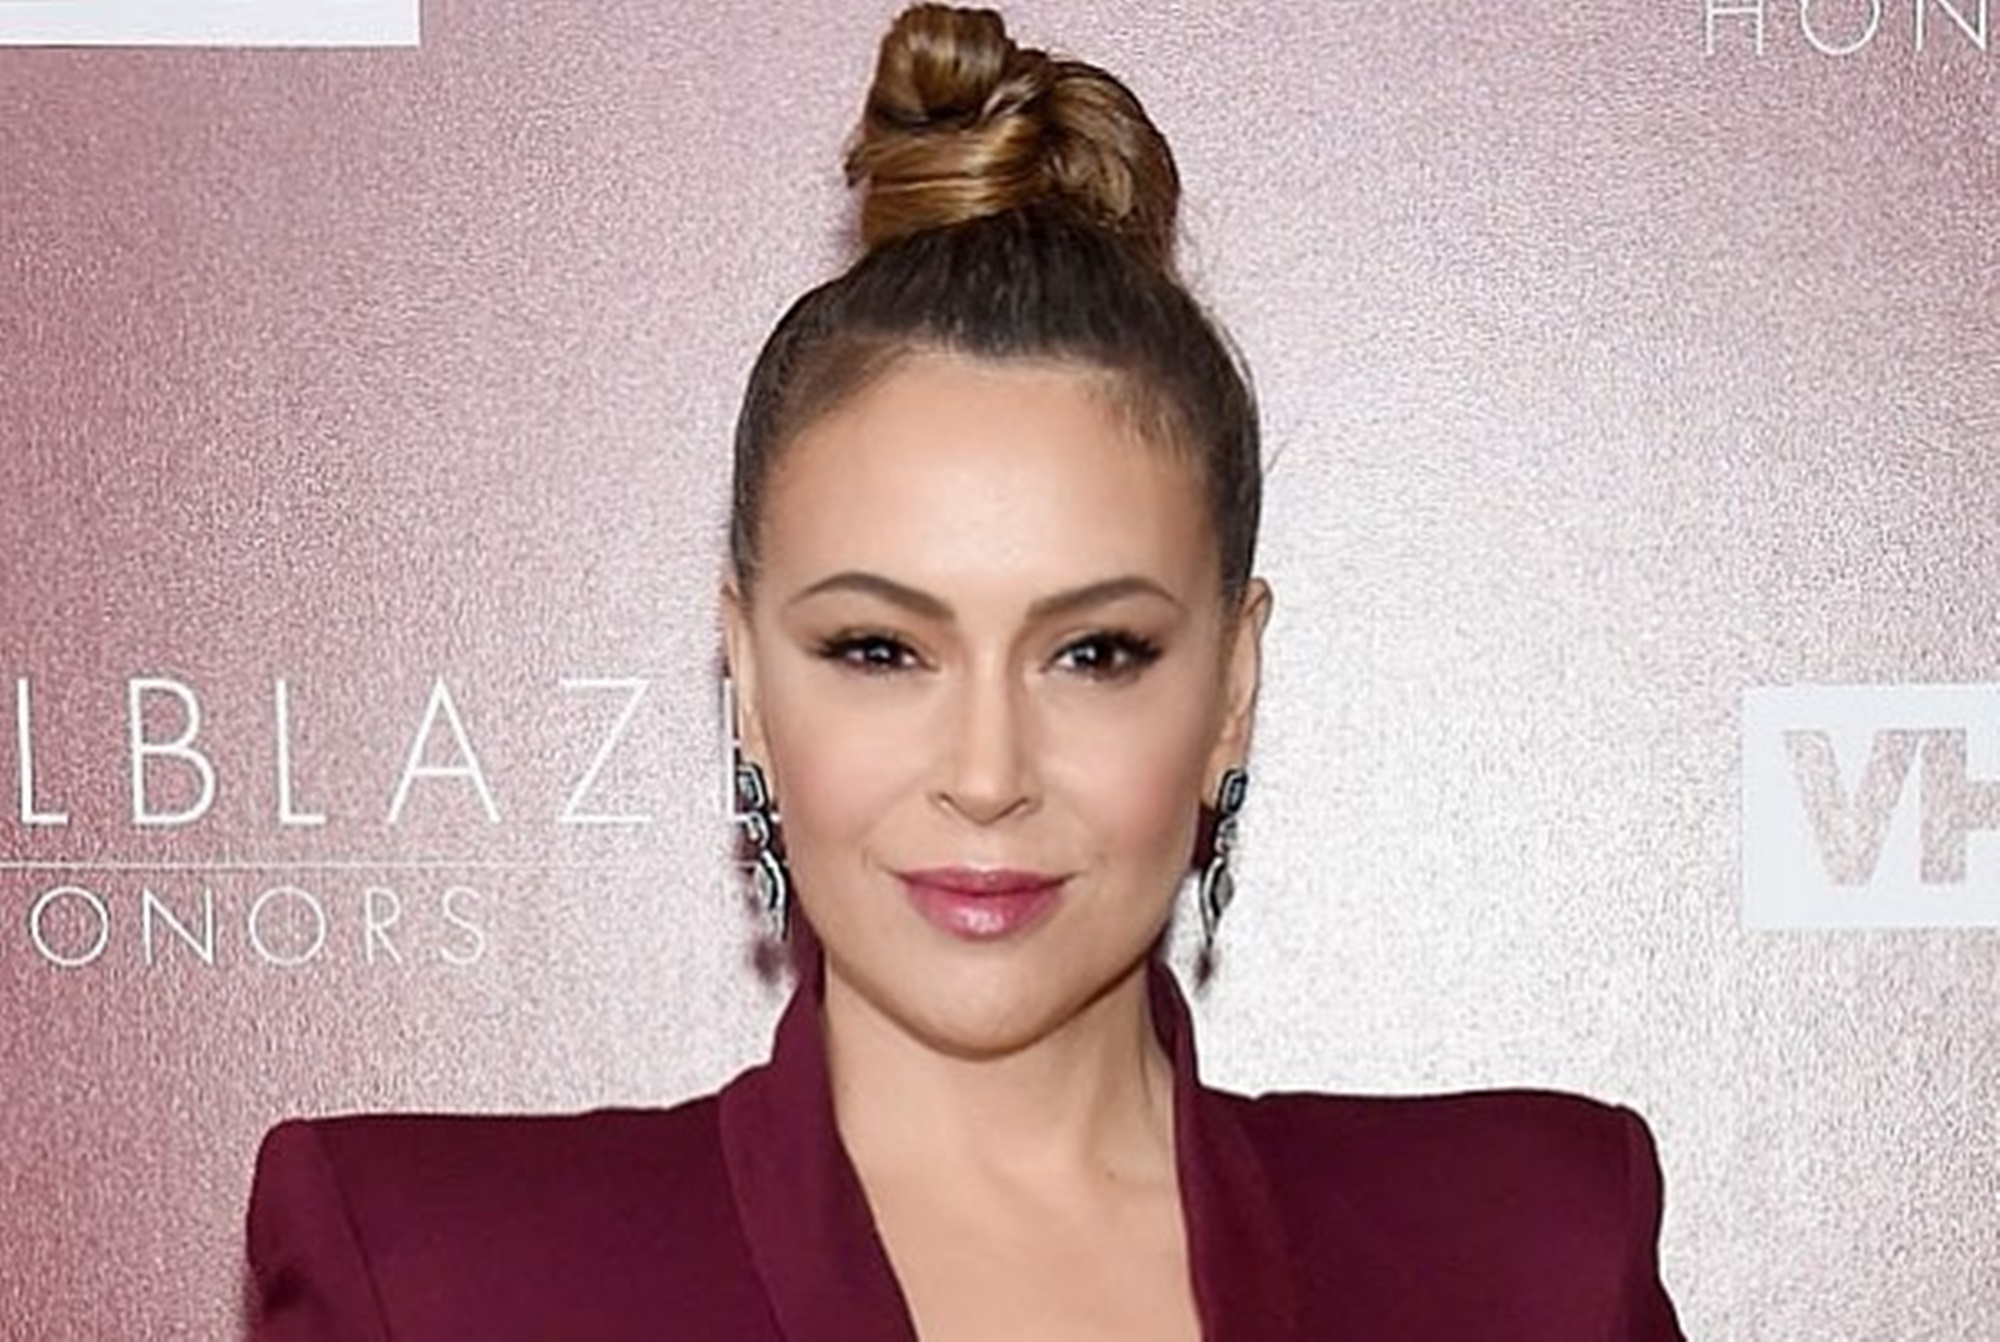 alyssa-milano-gets-mixed-responses-for-sex-strike-idea-after-controversial-abortion-law-was-signed-in-georgia-some-men-support-the-whos-the-boss-actress